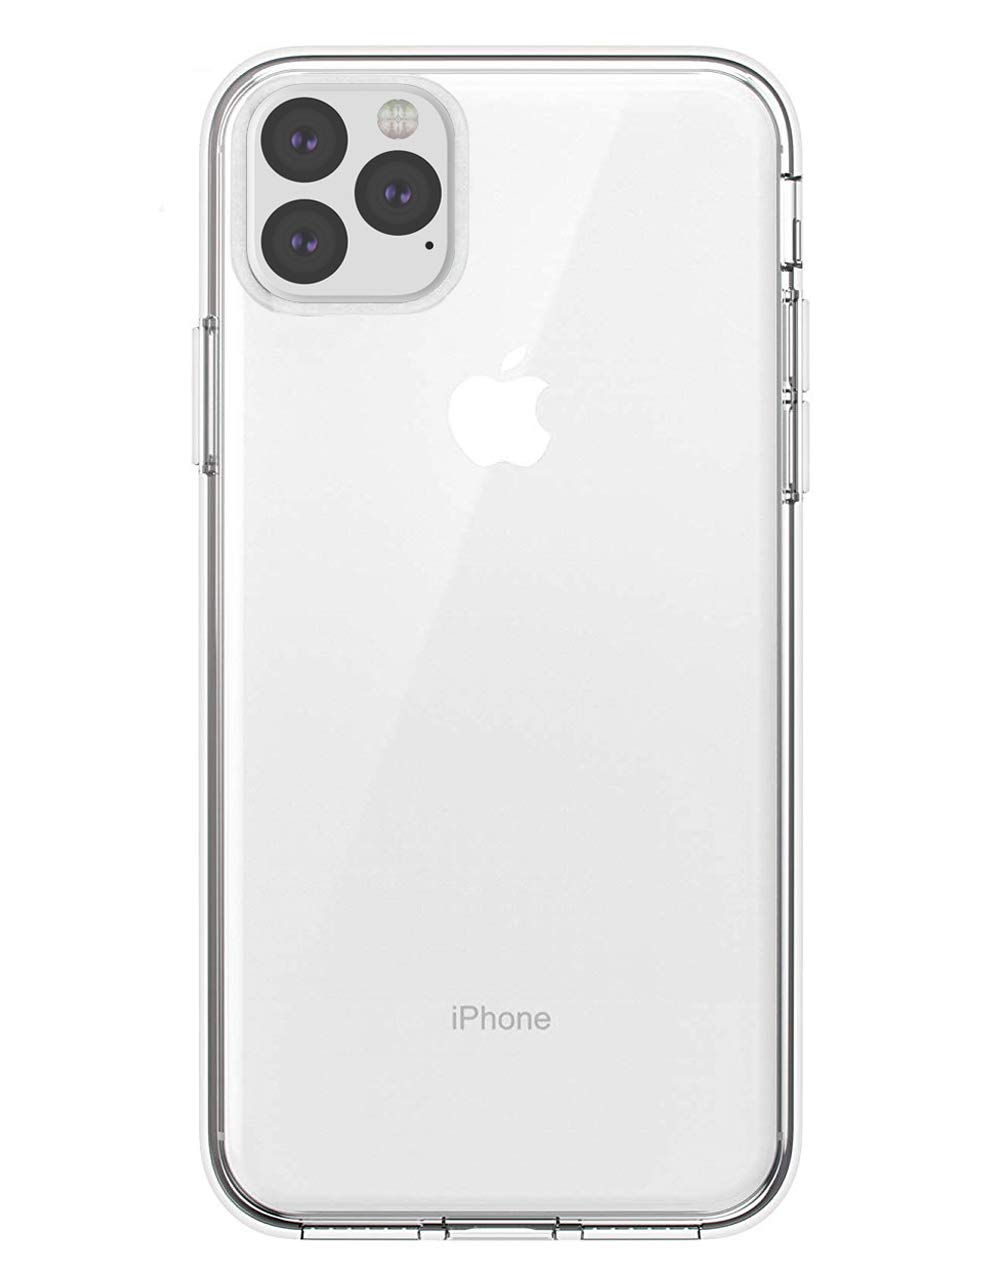 zisure 11 Pro Max Cases Crystal Clear Soft TPU Cases Slim Fit for 6.5 inch iPhone 11 Pro Max